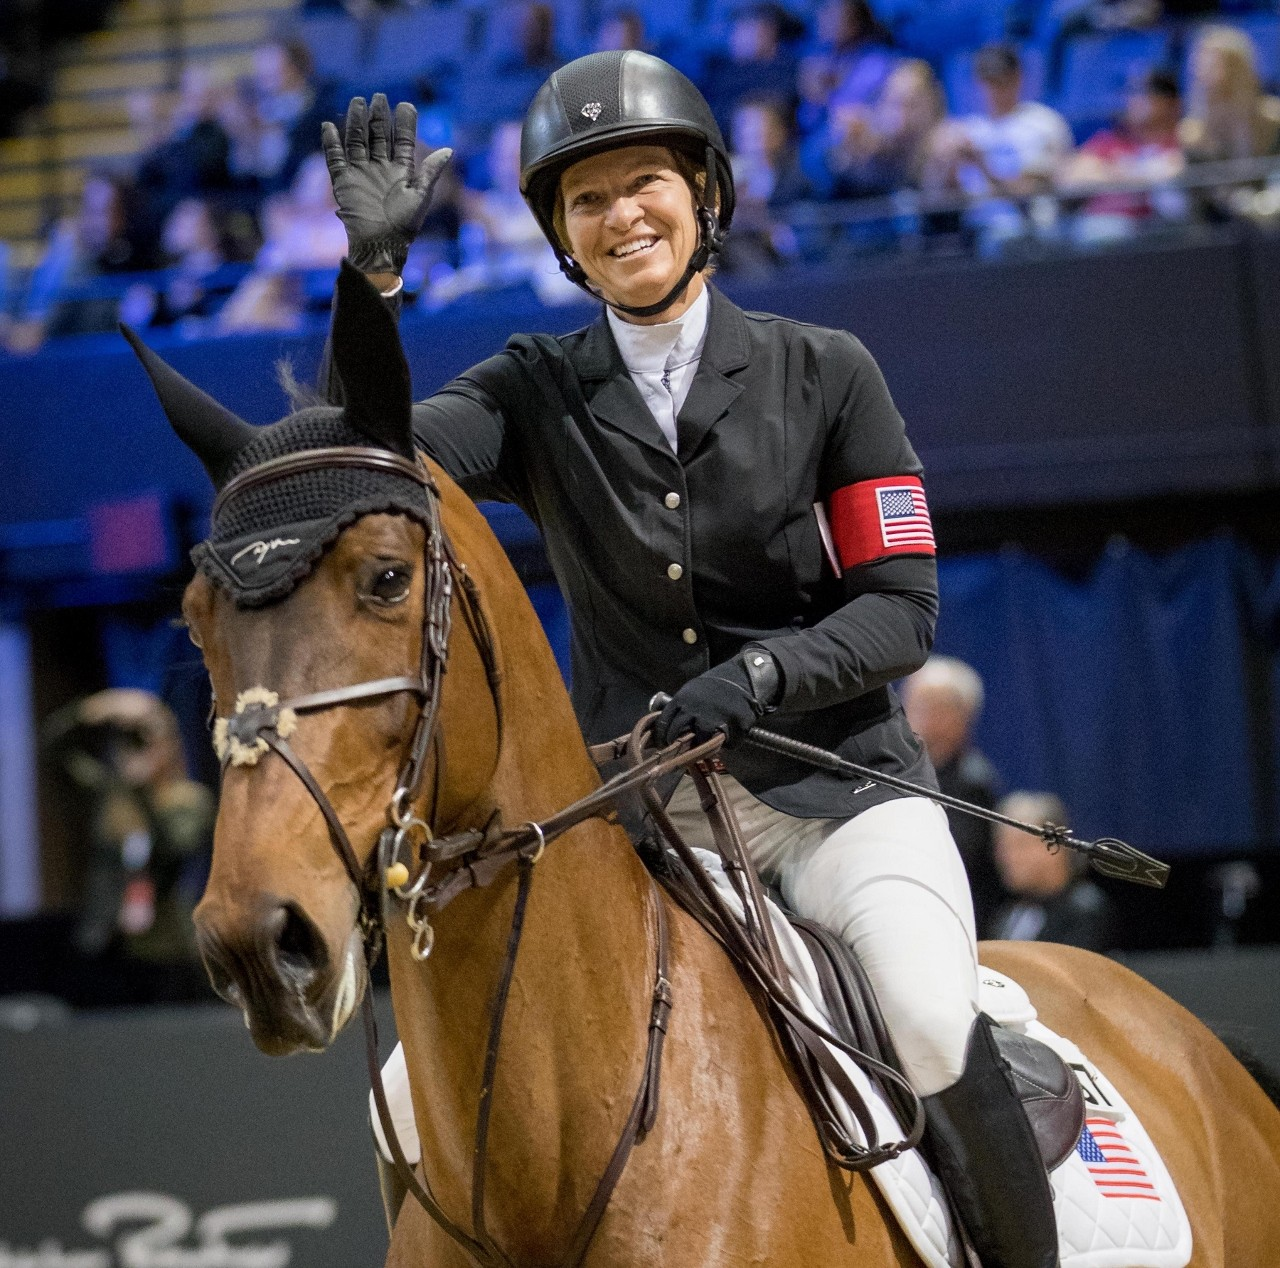 Two-time Olympic team gold medalist Beezie Madden road for Riders USA. Photo by Jessica Rodrigues for EEM